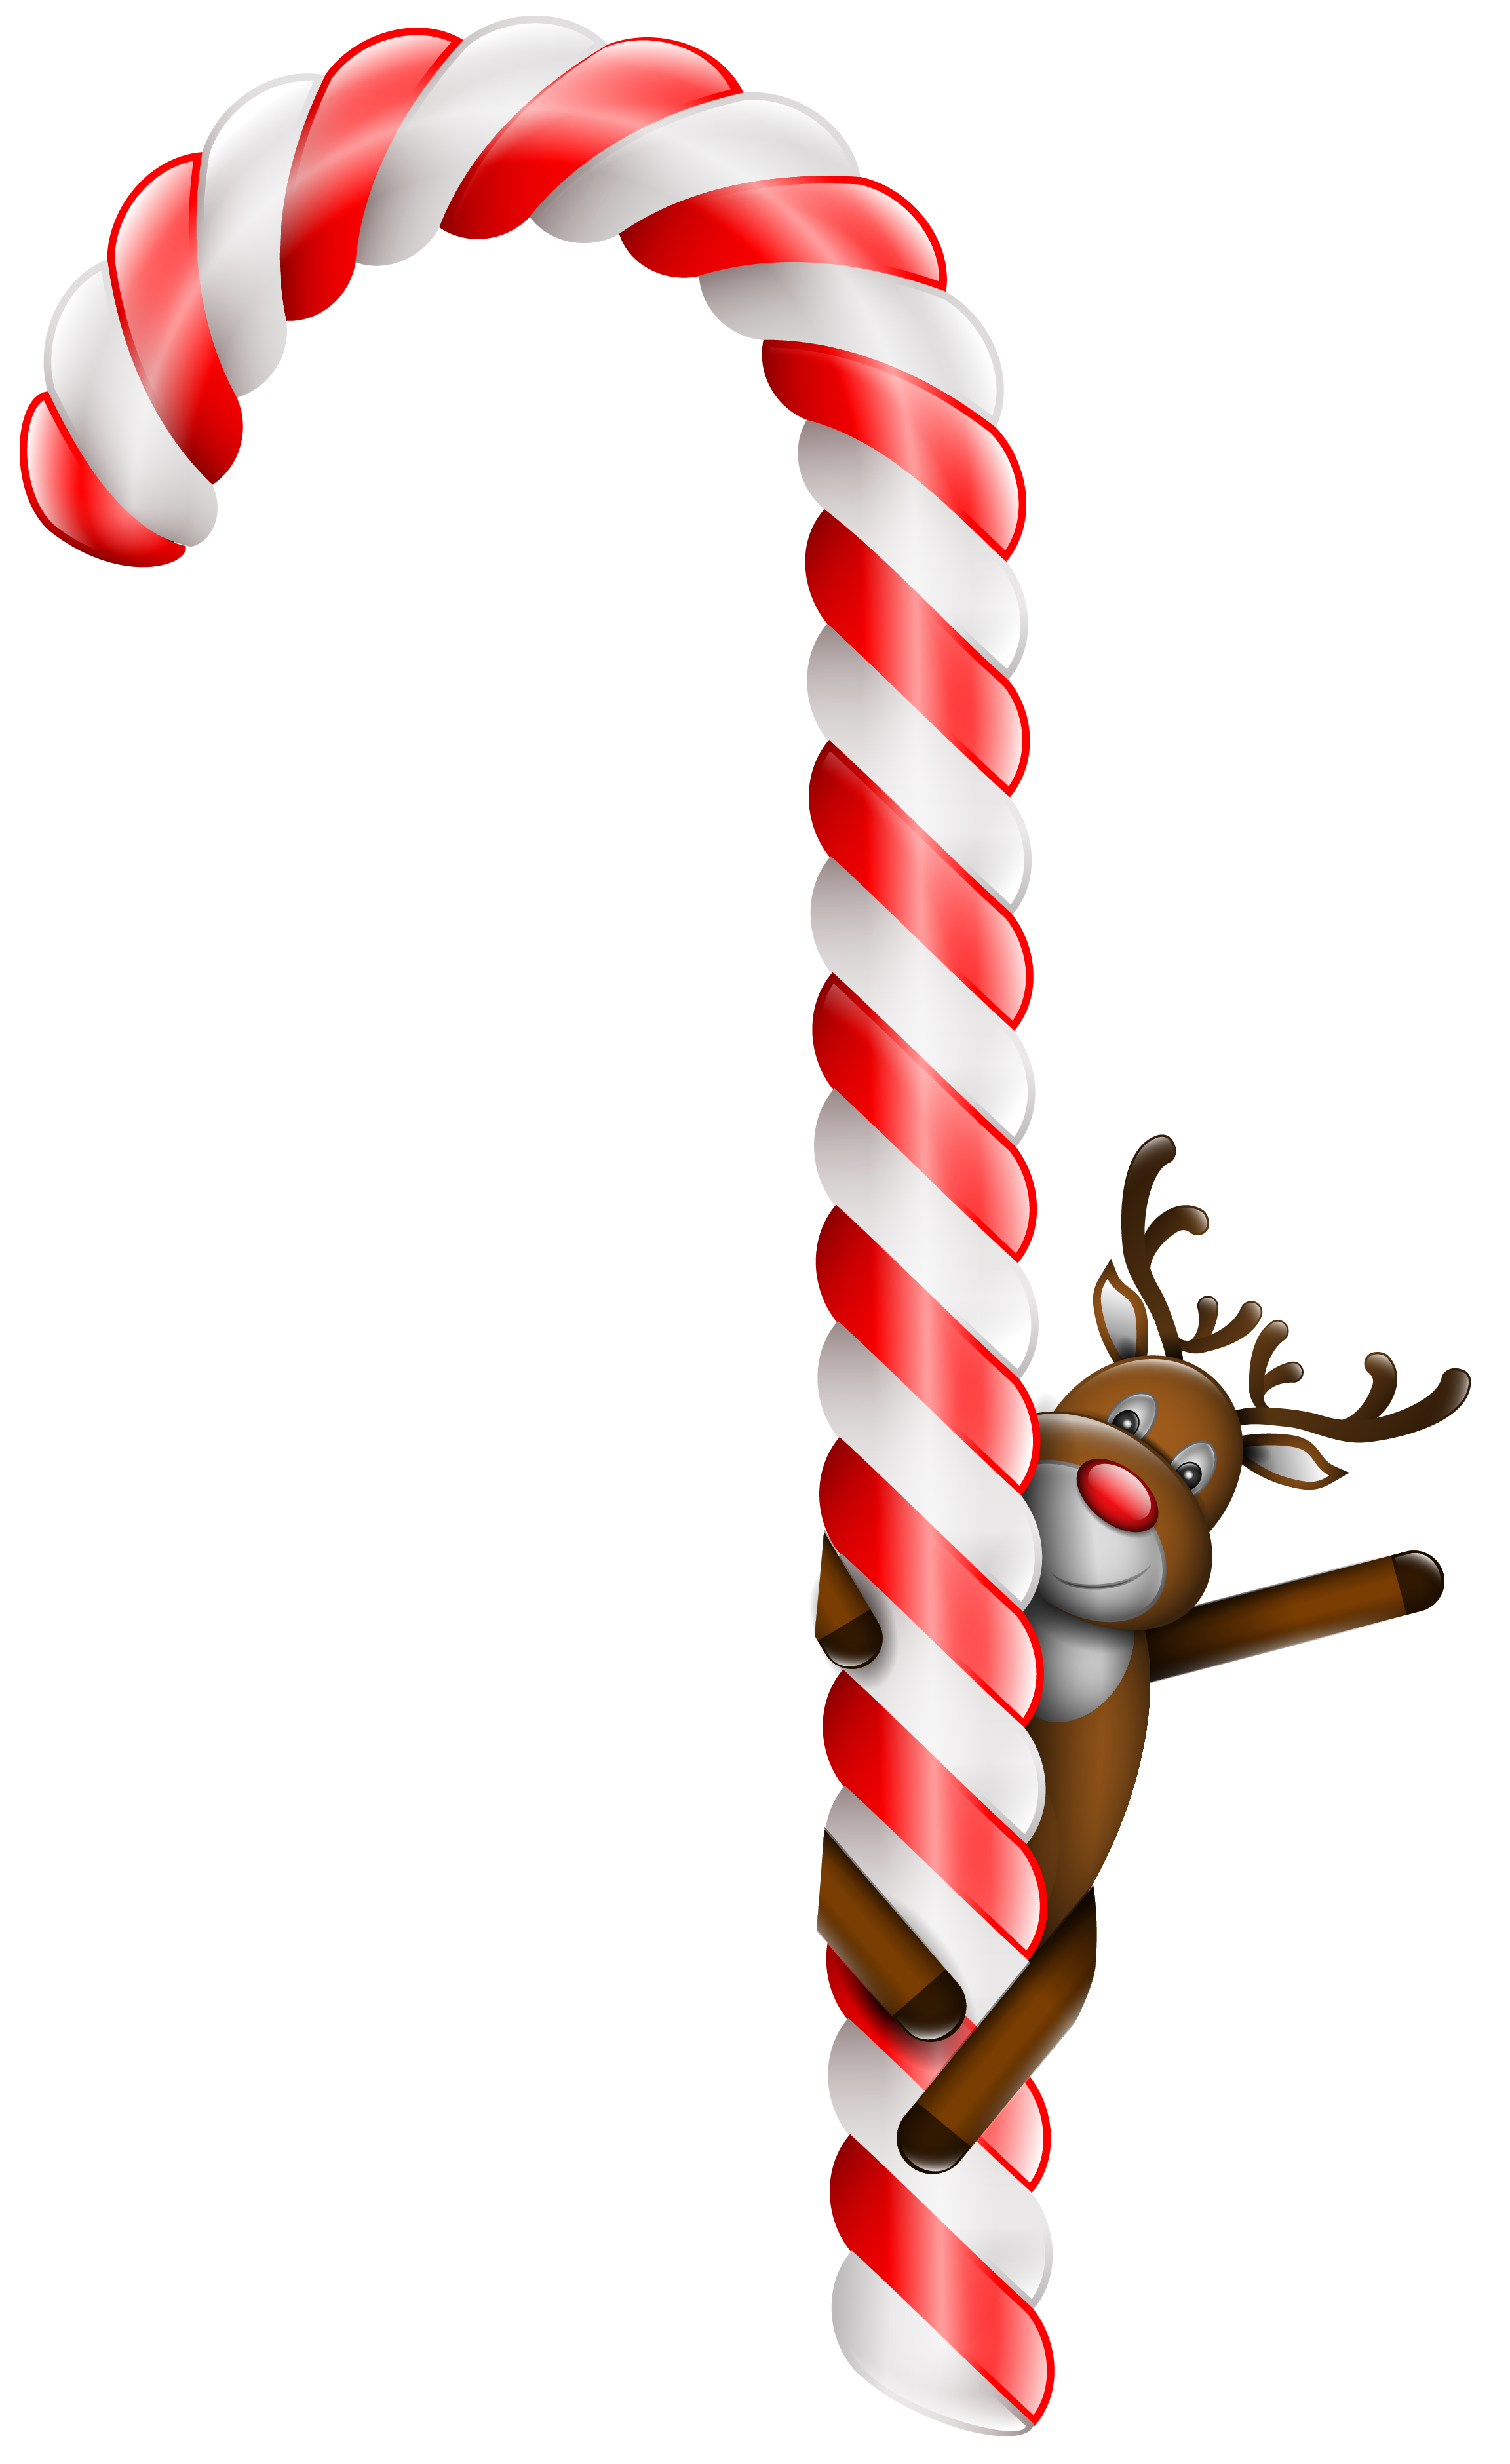 Candy Cane clipart transparent background Candy size Clipart View with